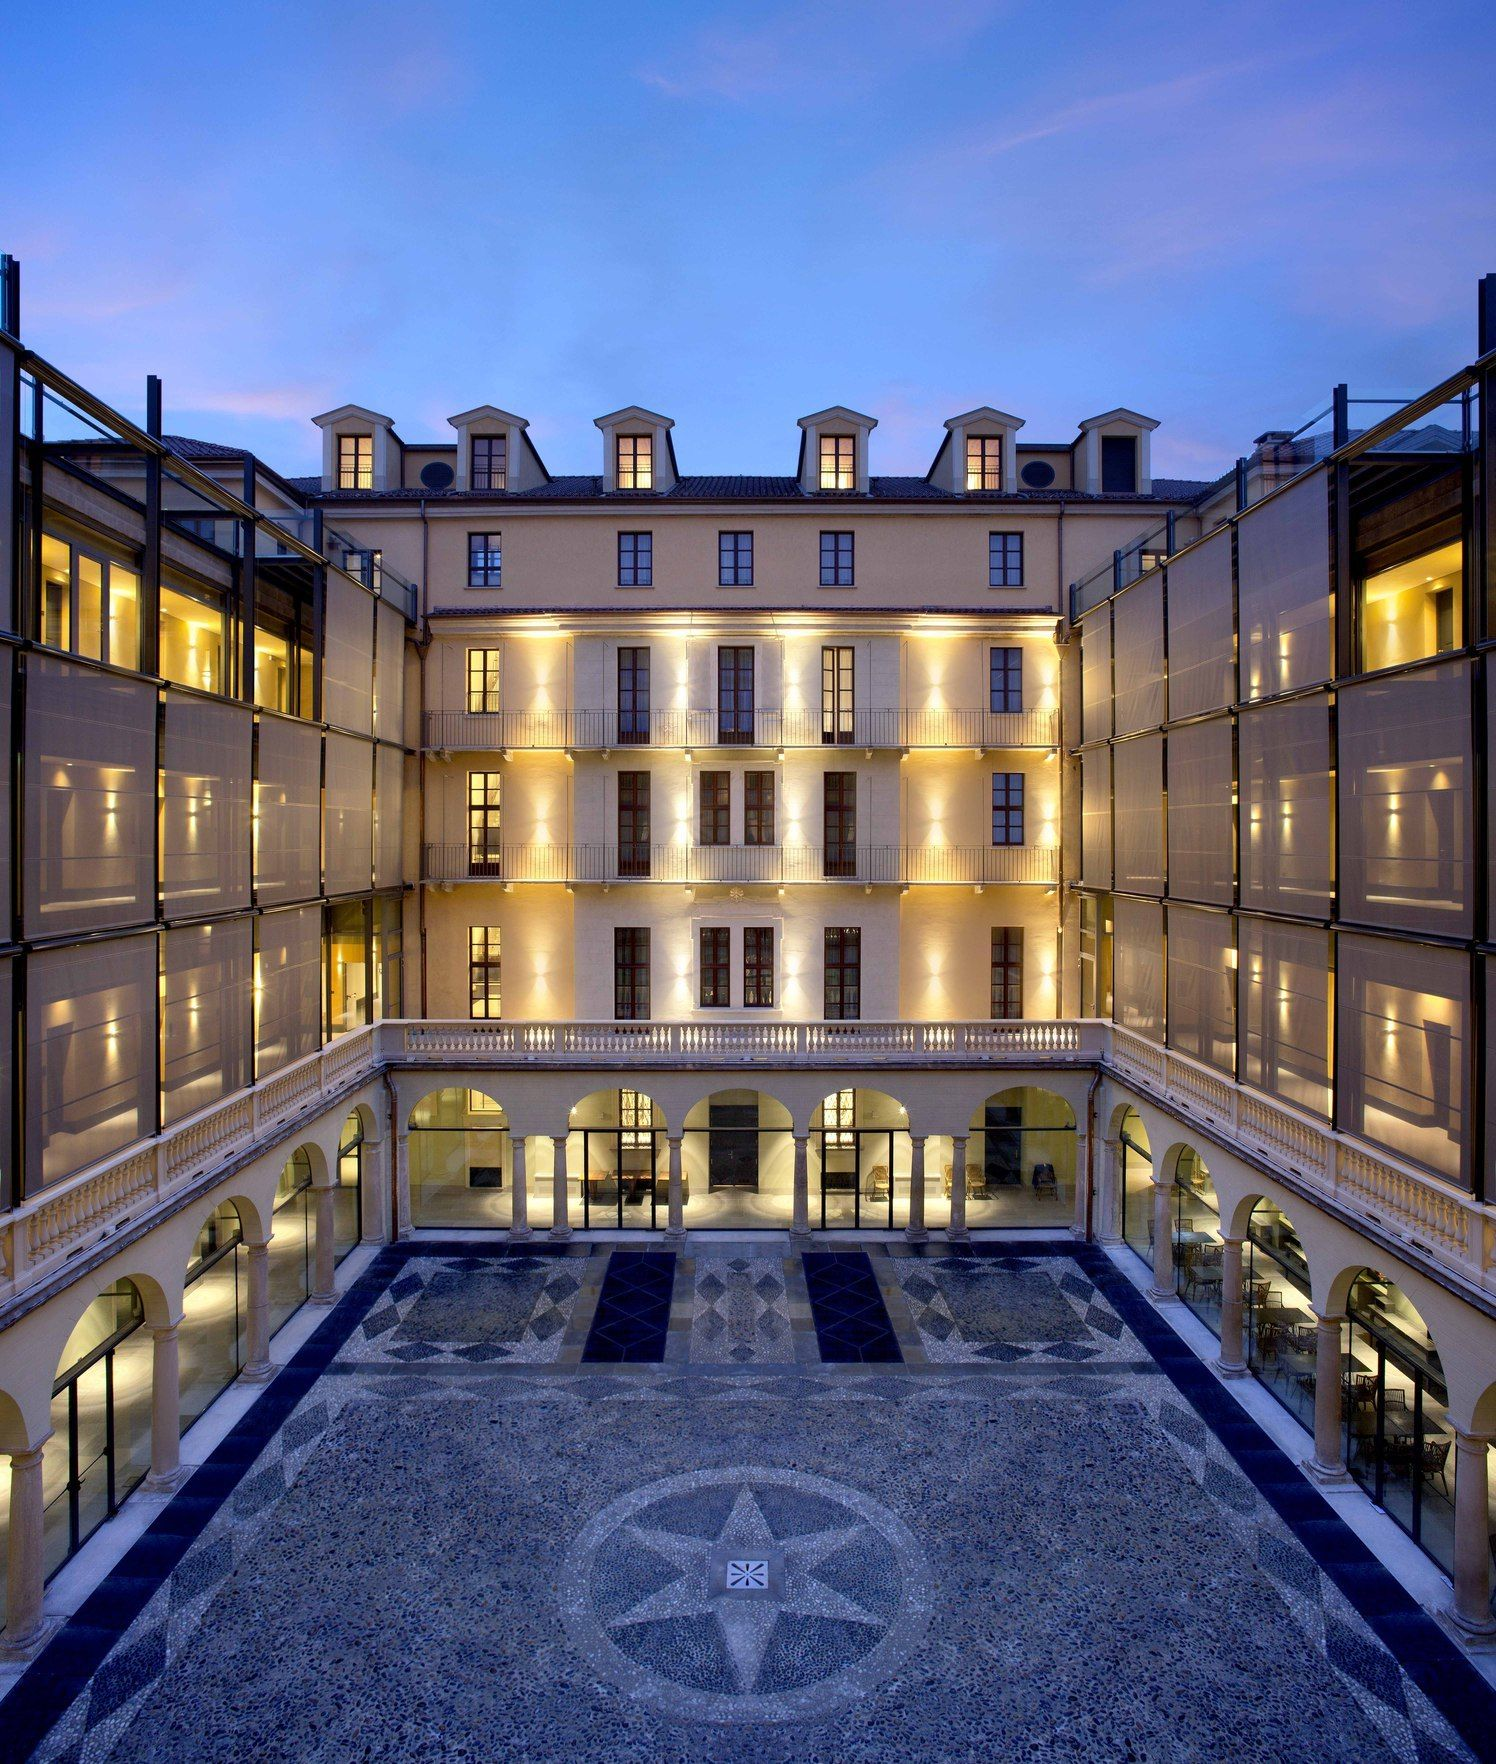 30 Legendary Historic Hotels Inducted Into Historic Hotels Worldwide In 2017 Luxe Beat Magazine In 2020 Historic Hotels Resort Lifestyle Nh Hotel